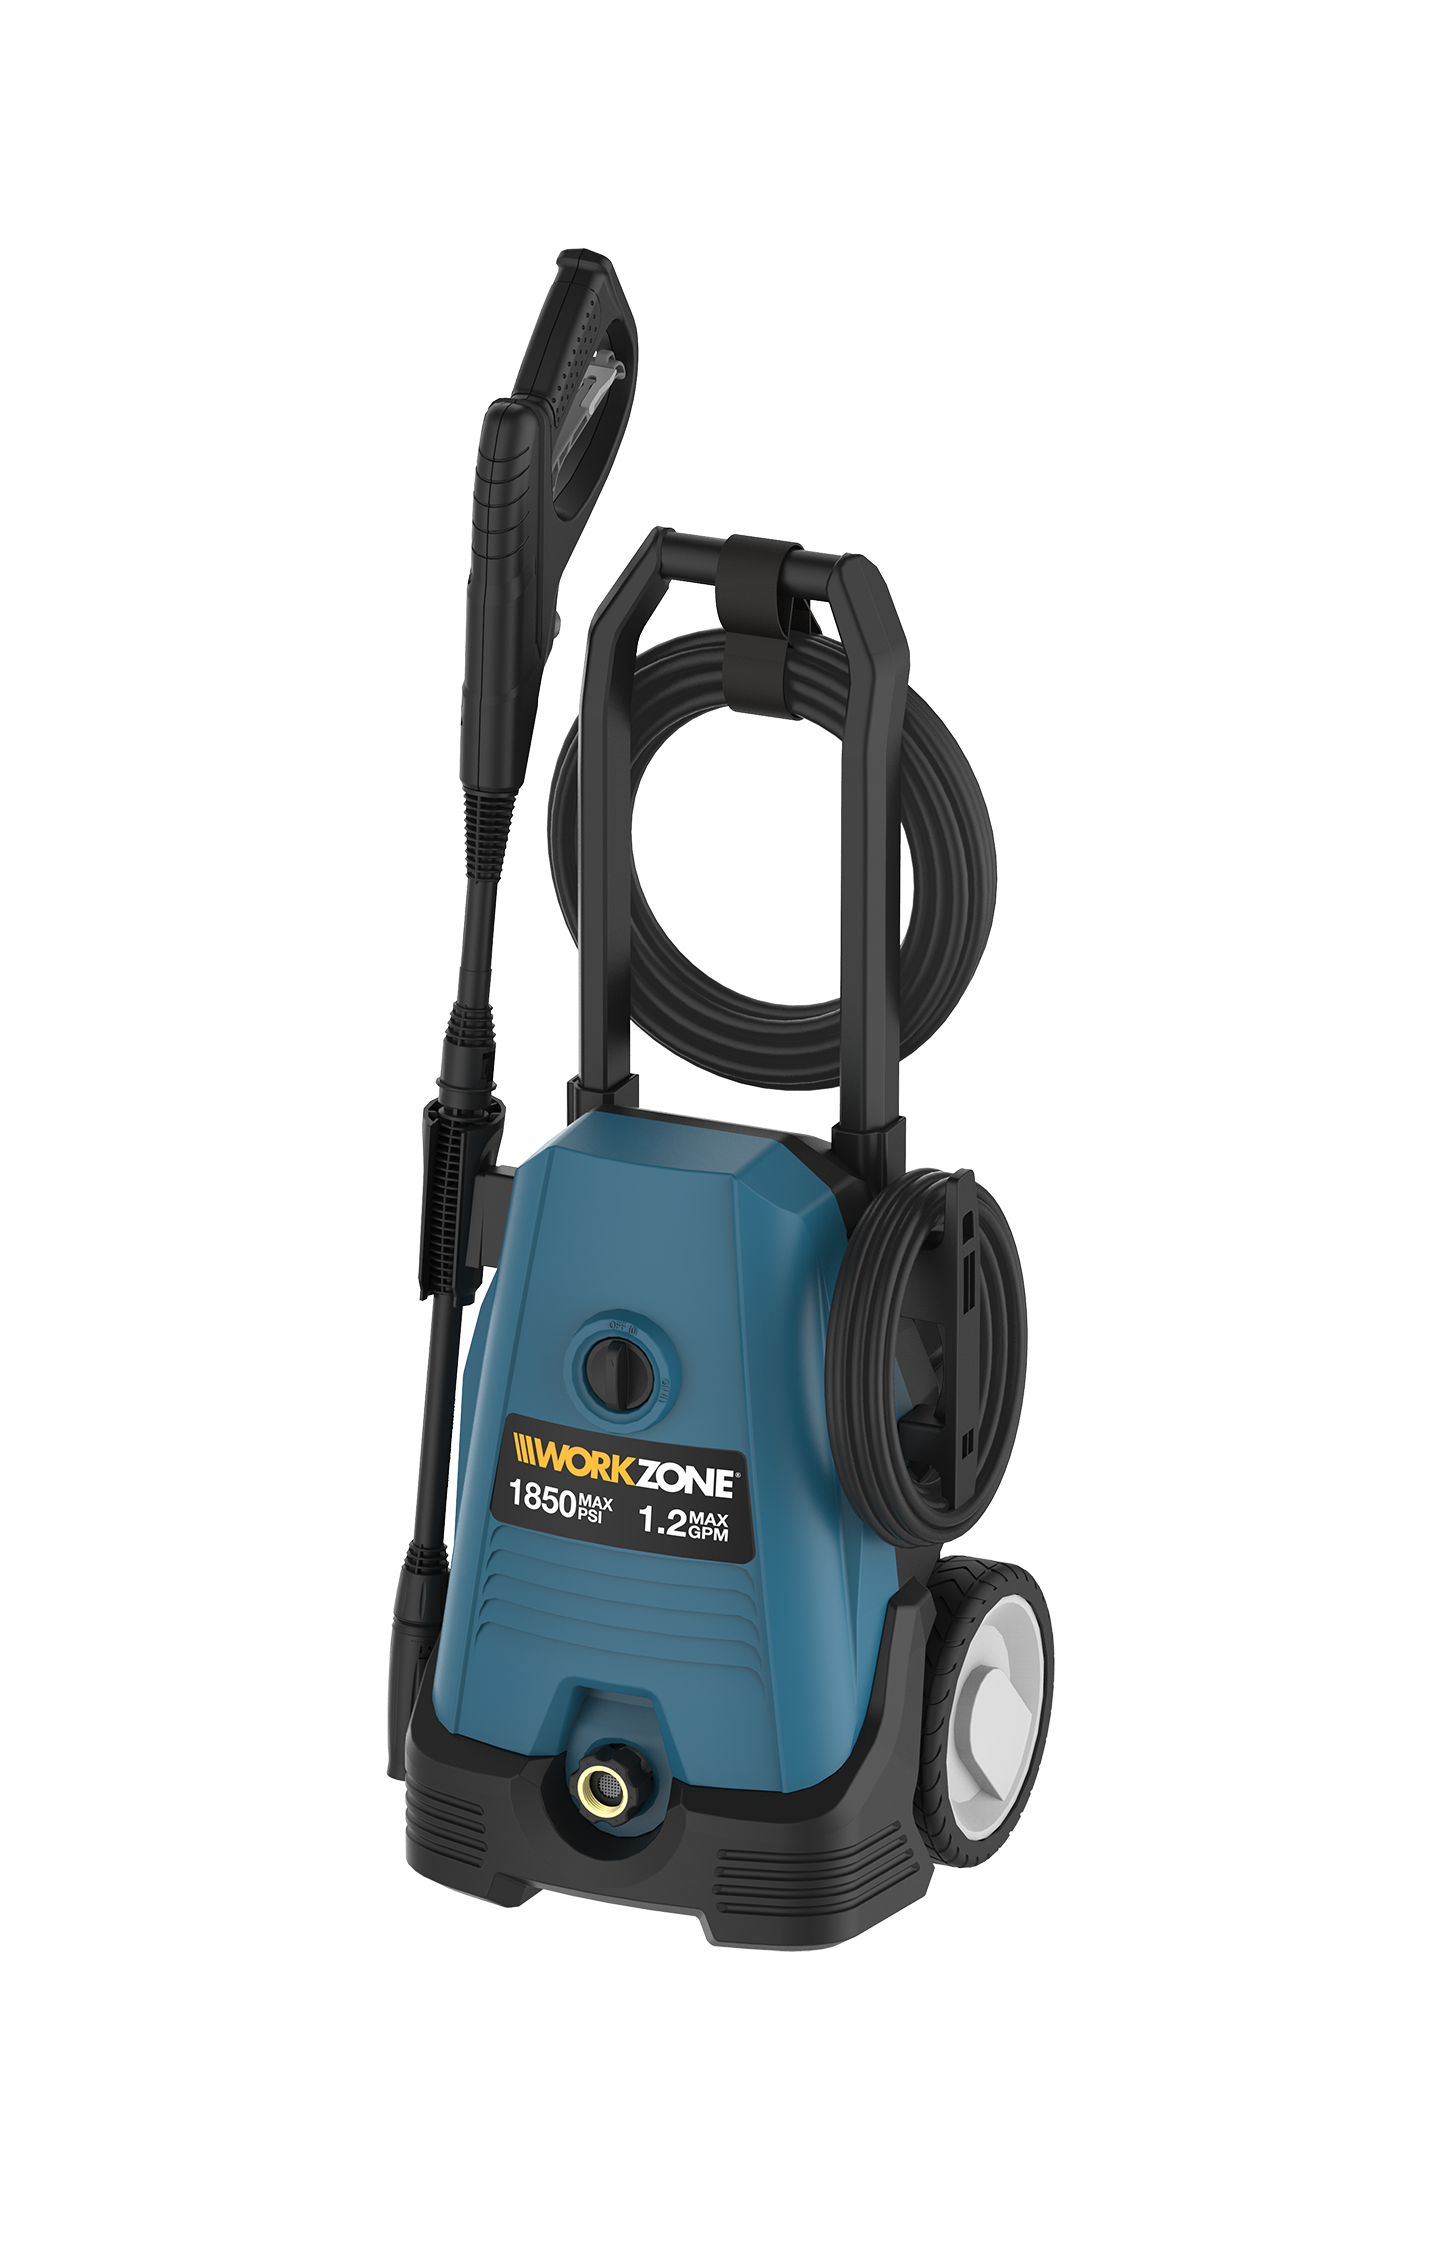 wz1850-electric-pressure-washer-2.png